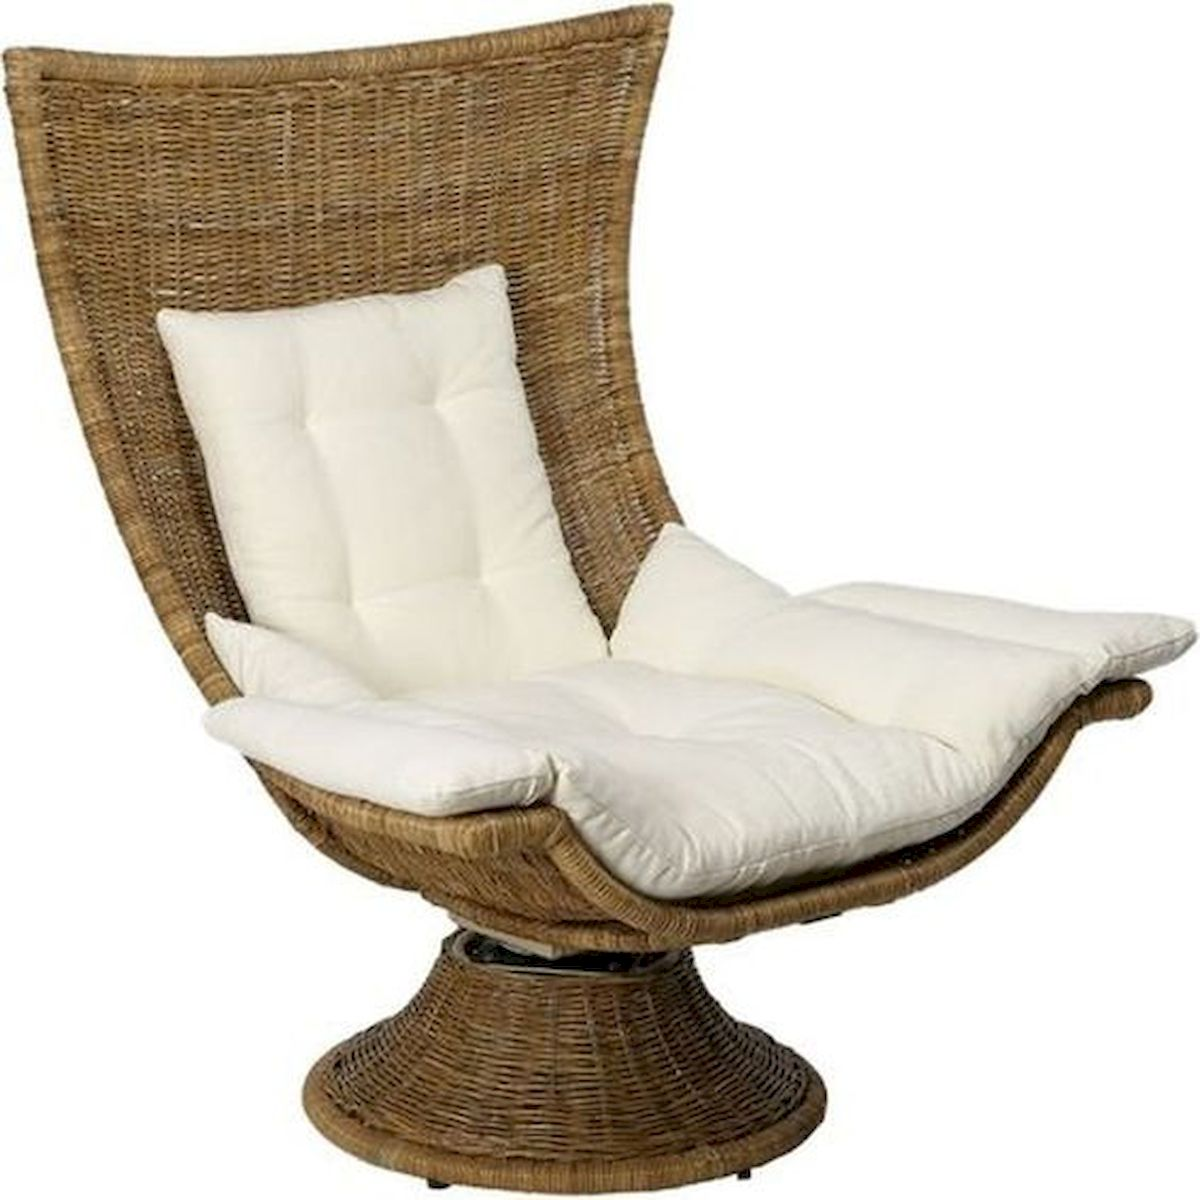 50 DIY Relaxing Chairs Design Ideas That Will Make Your Home Look Great (4)